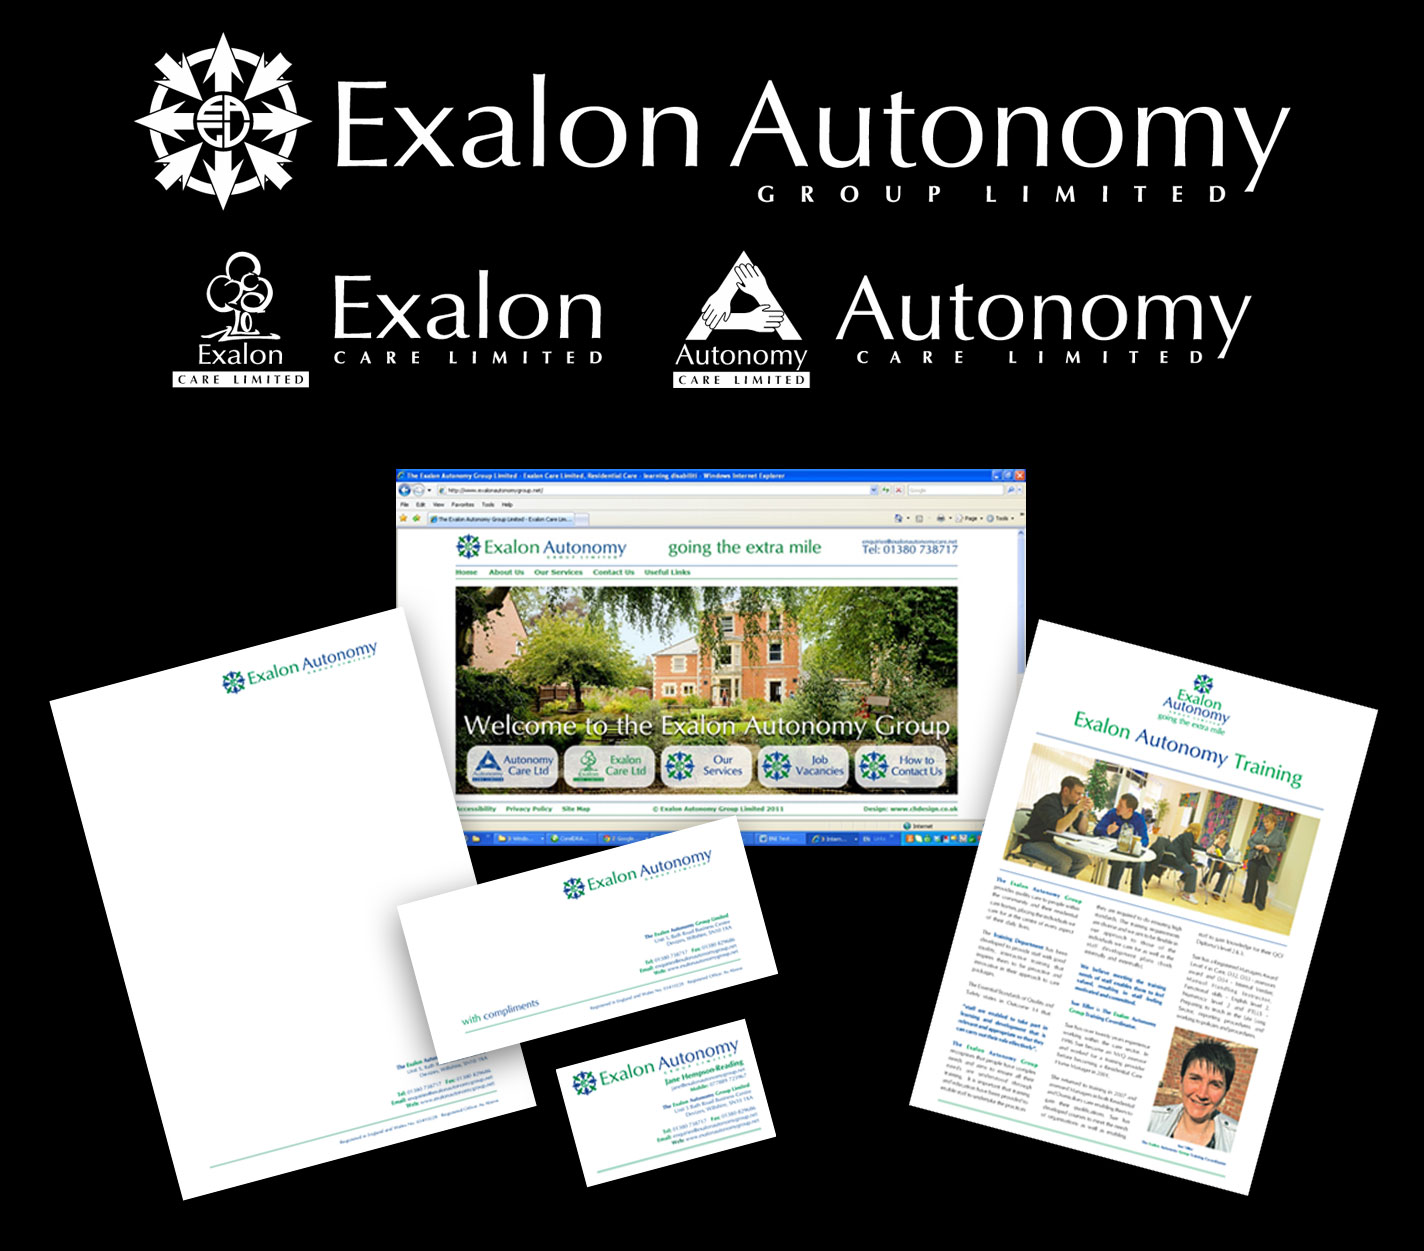 Identity - New Group Logo and Updated Logos for Exalon and Autonomy Care - Stationery, Leaflets, and Website - Design, Specifications, Artworks and Production.